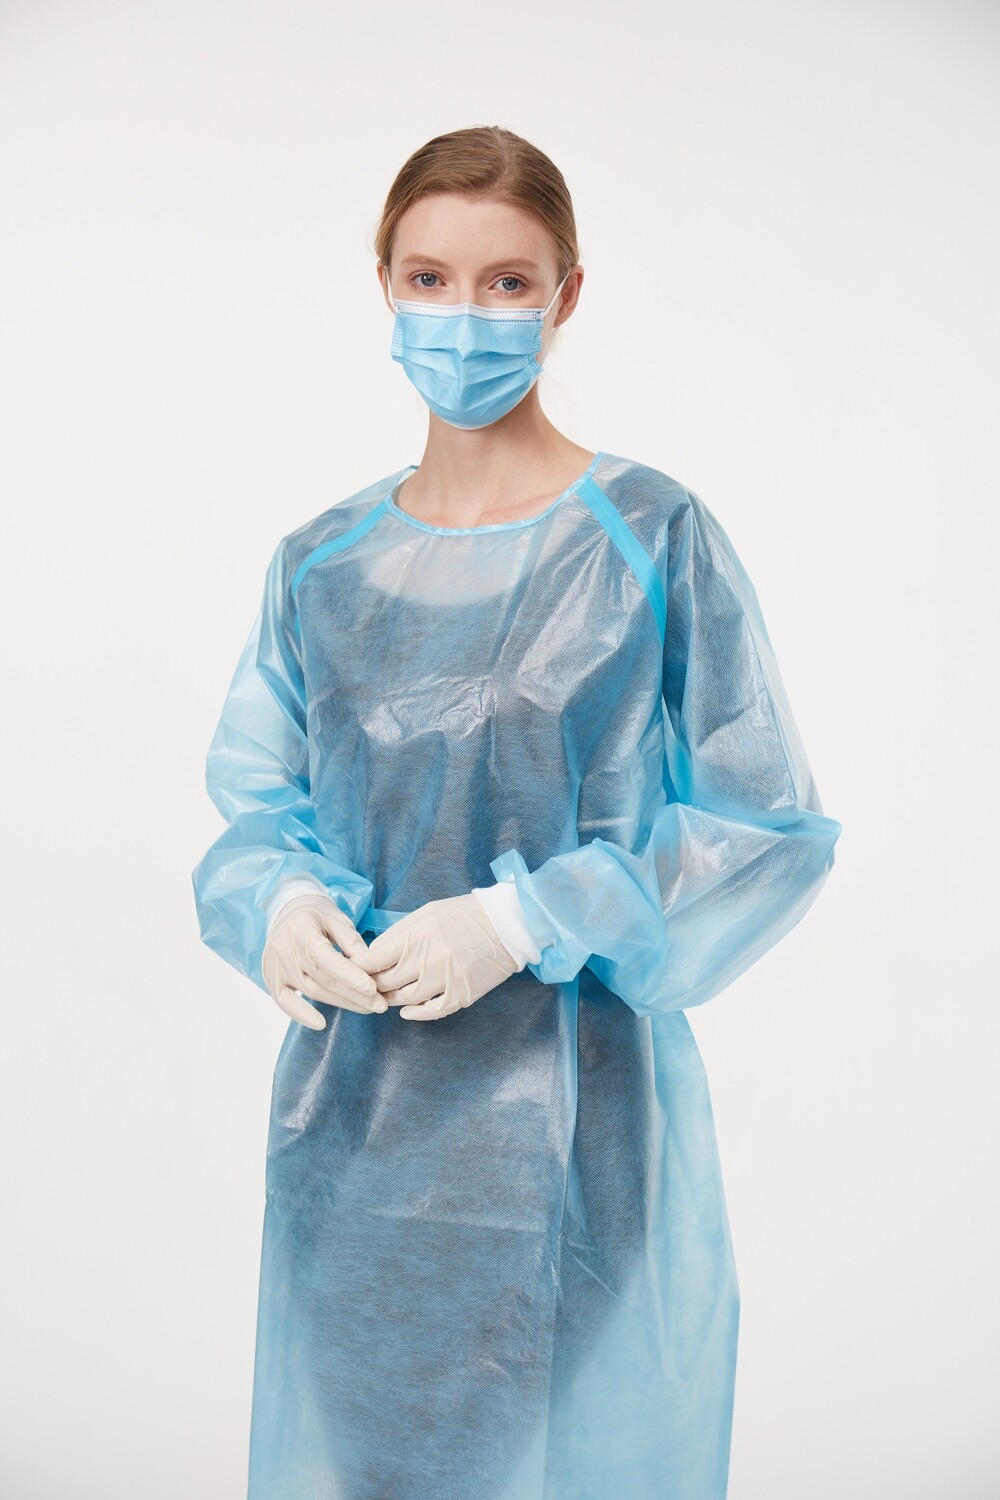 Isolation Gown AAMI Level 3 - 100 gown case